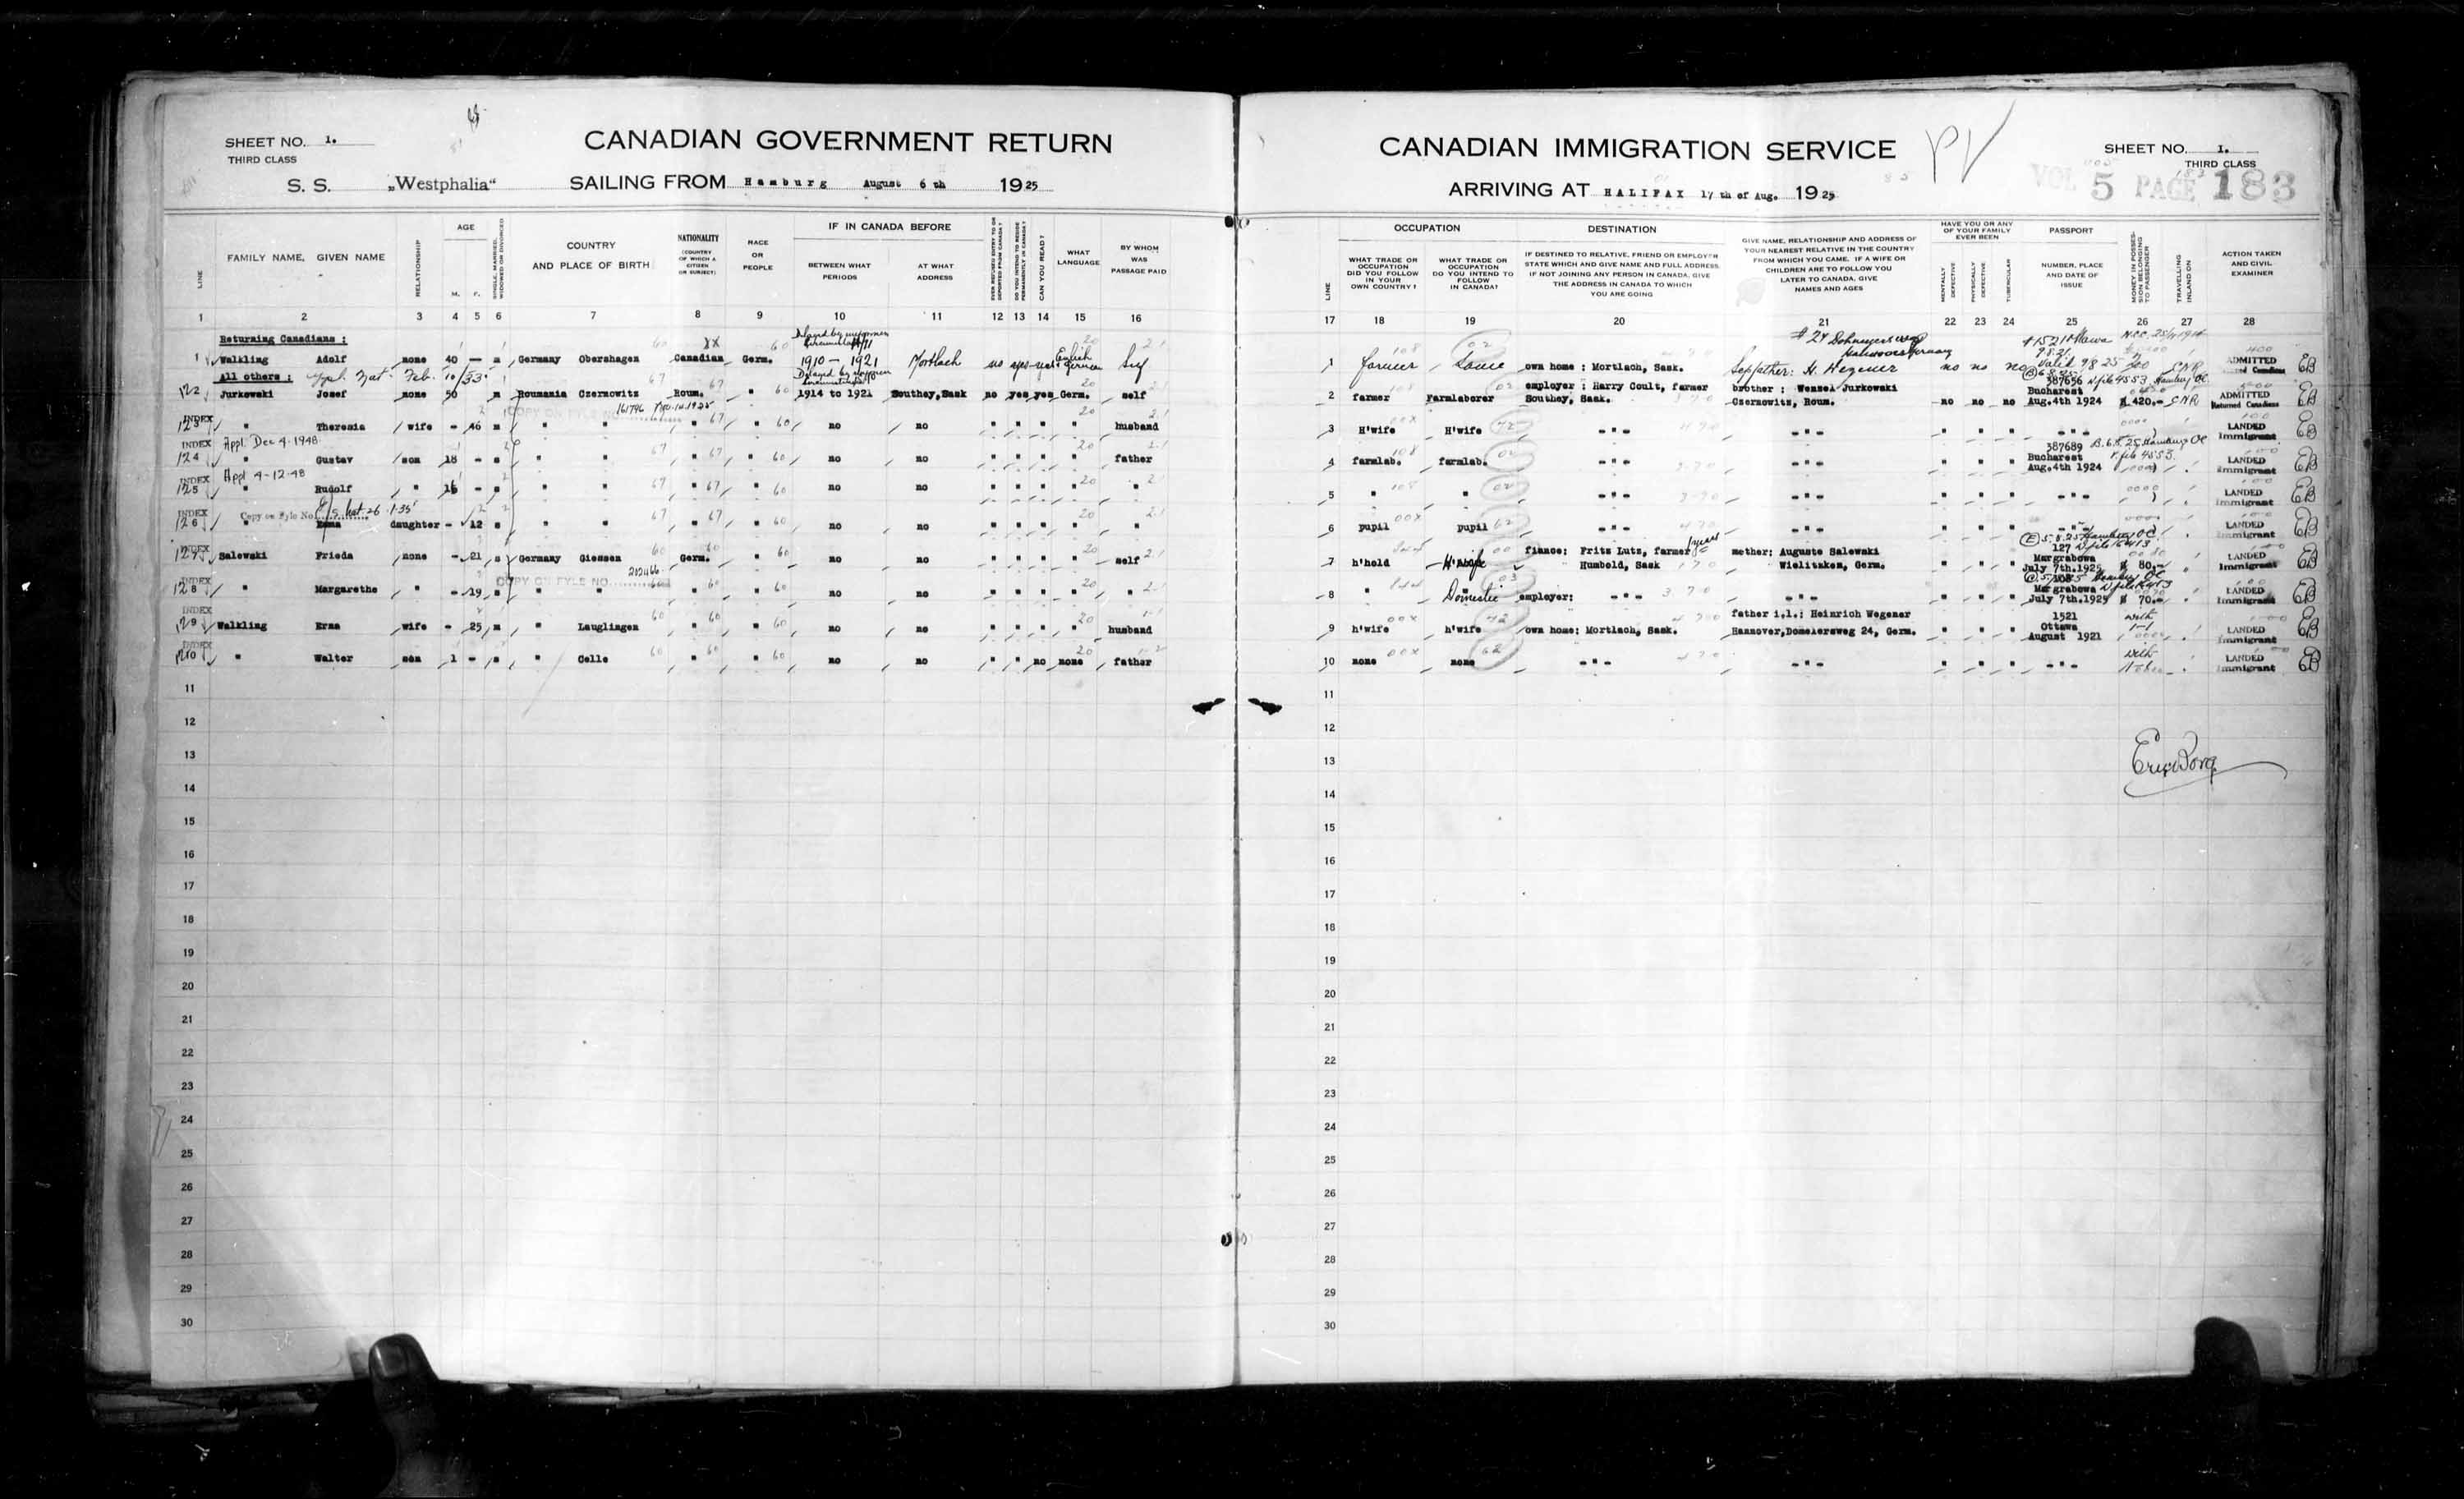 Title: Passenger Lists: Halifax (1925-1935) - Mikan Number: 134853 - Microform: t-14802